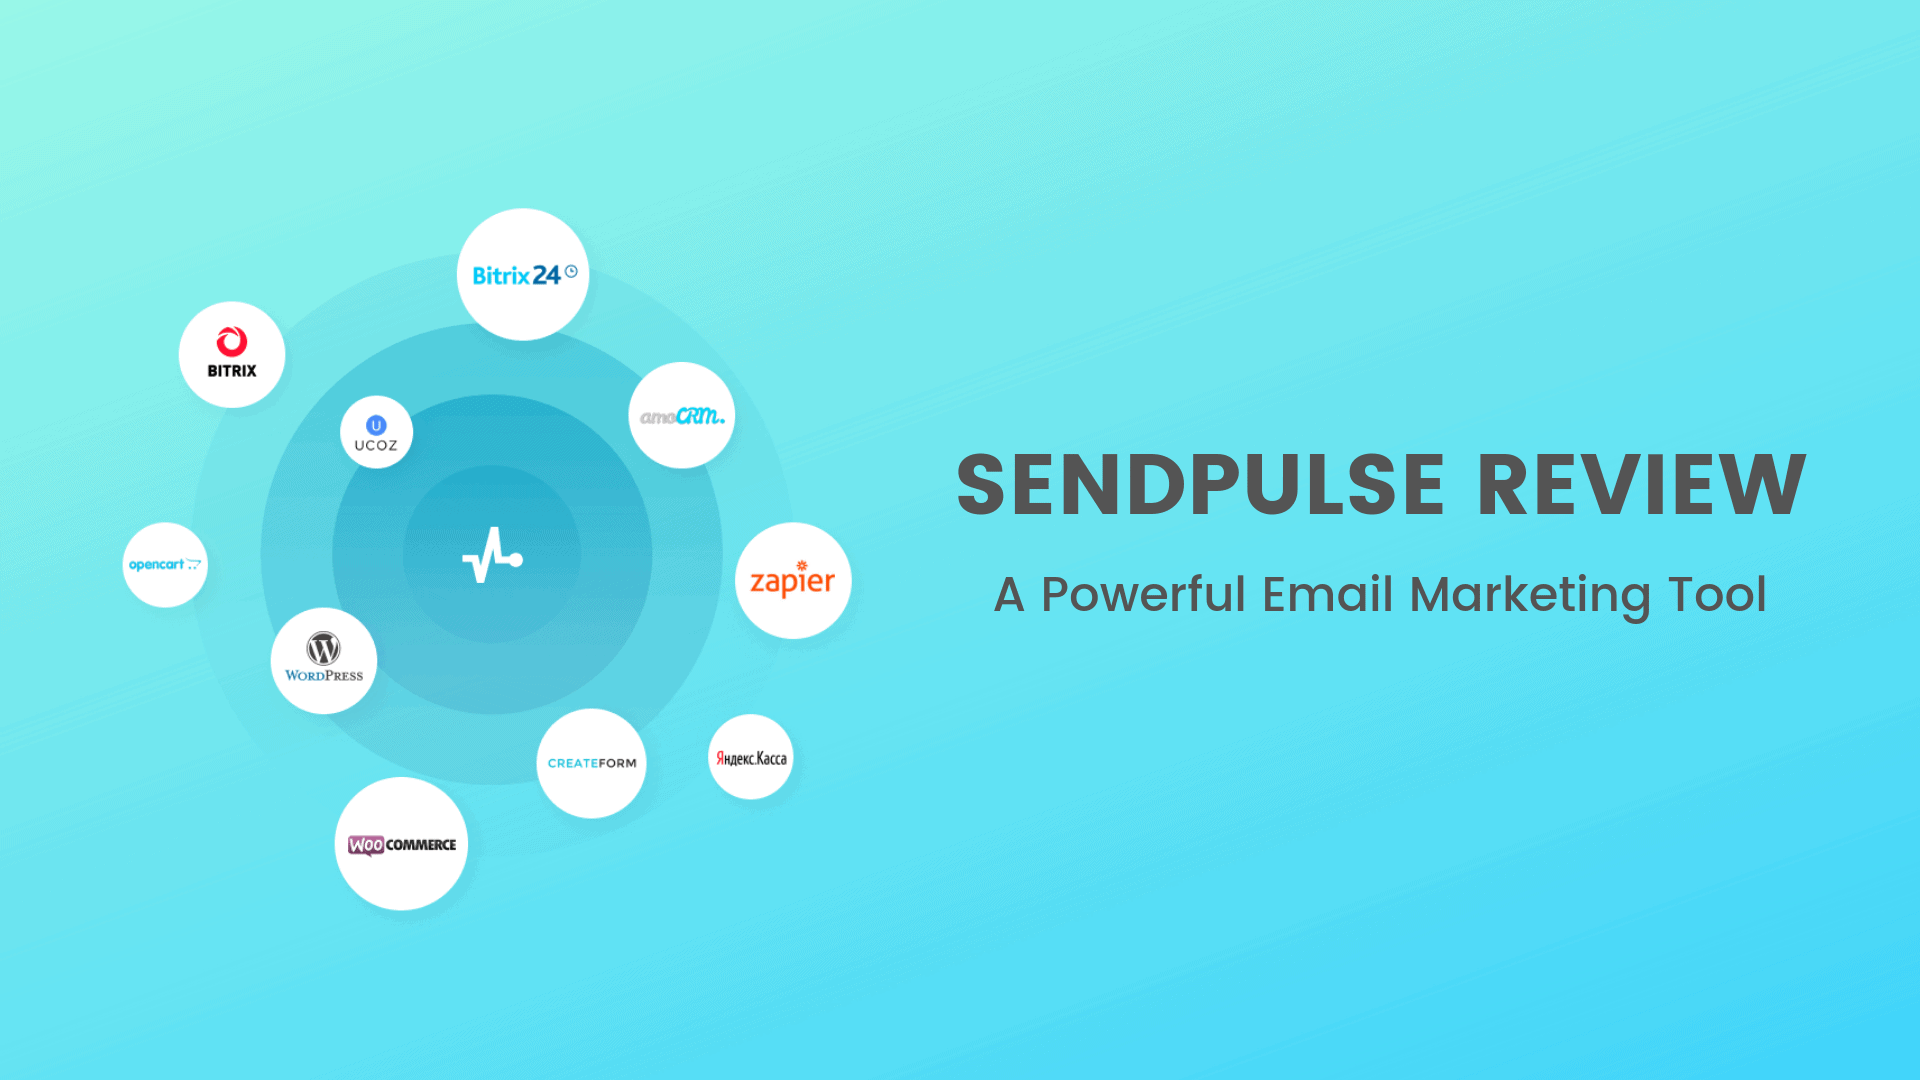 SendPulse Review 2019